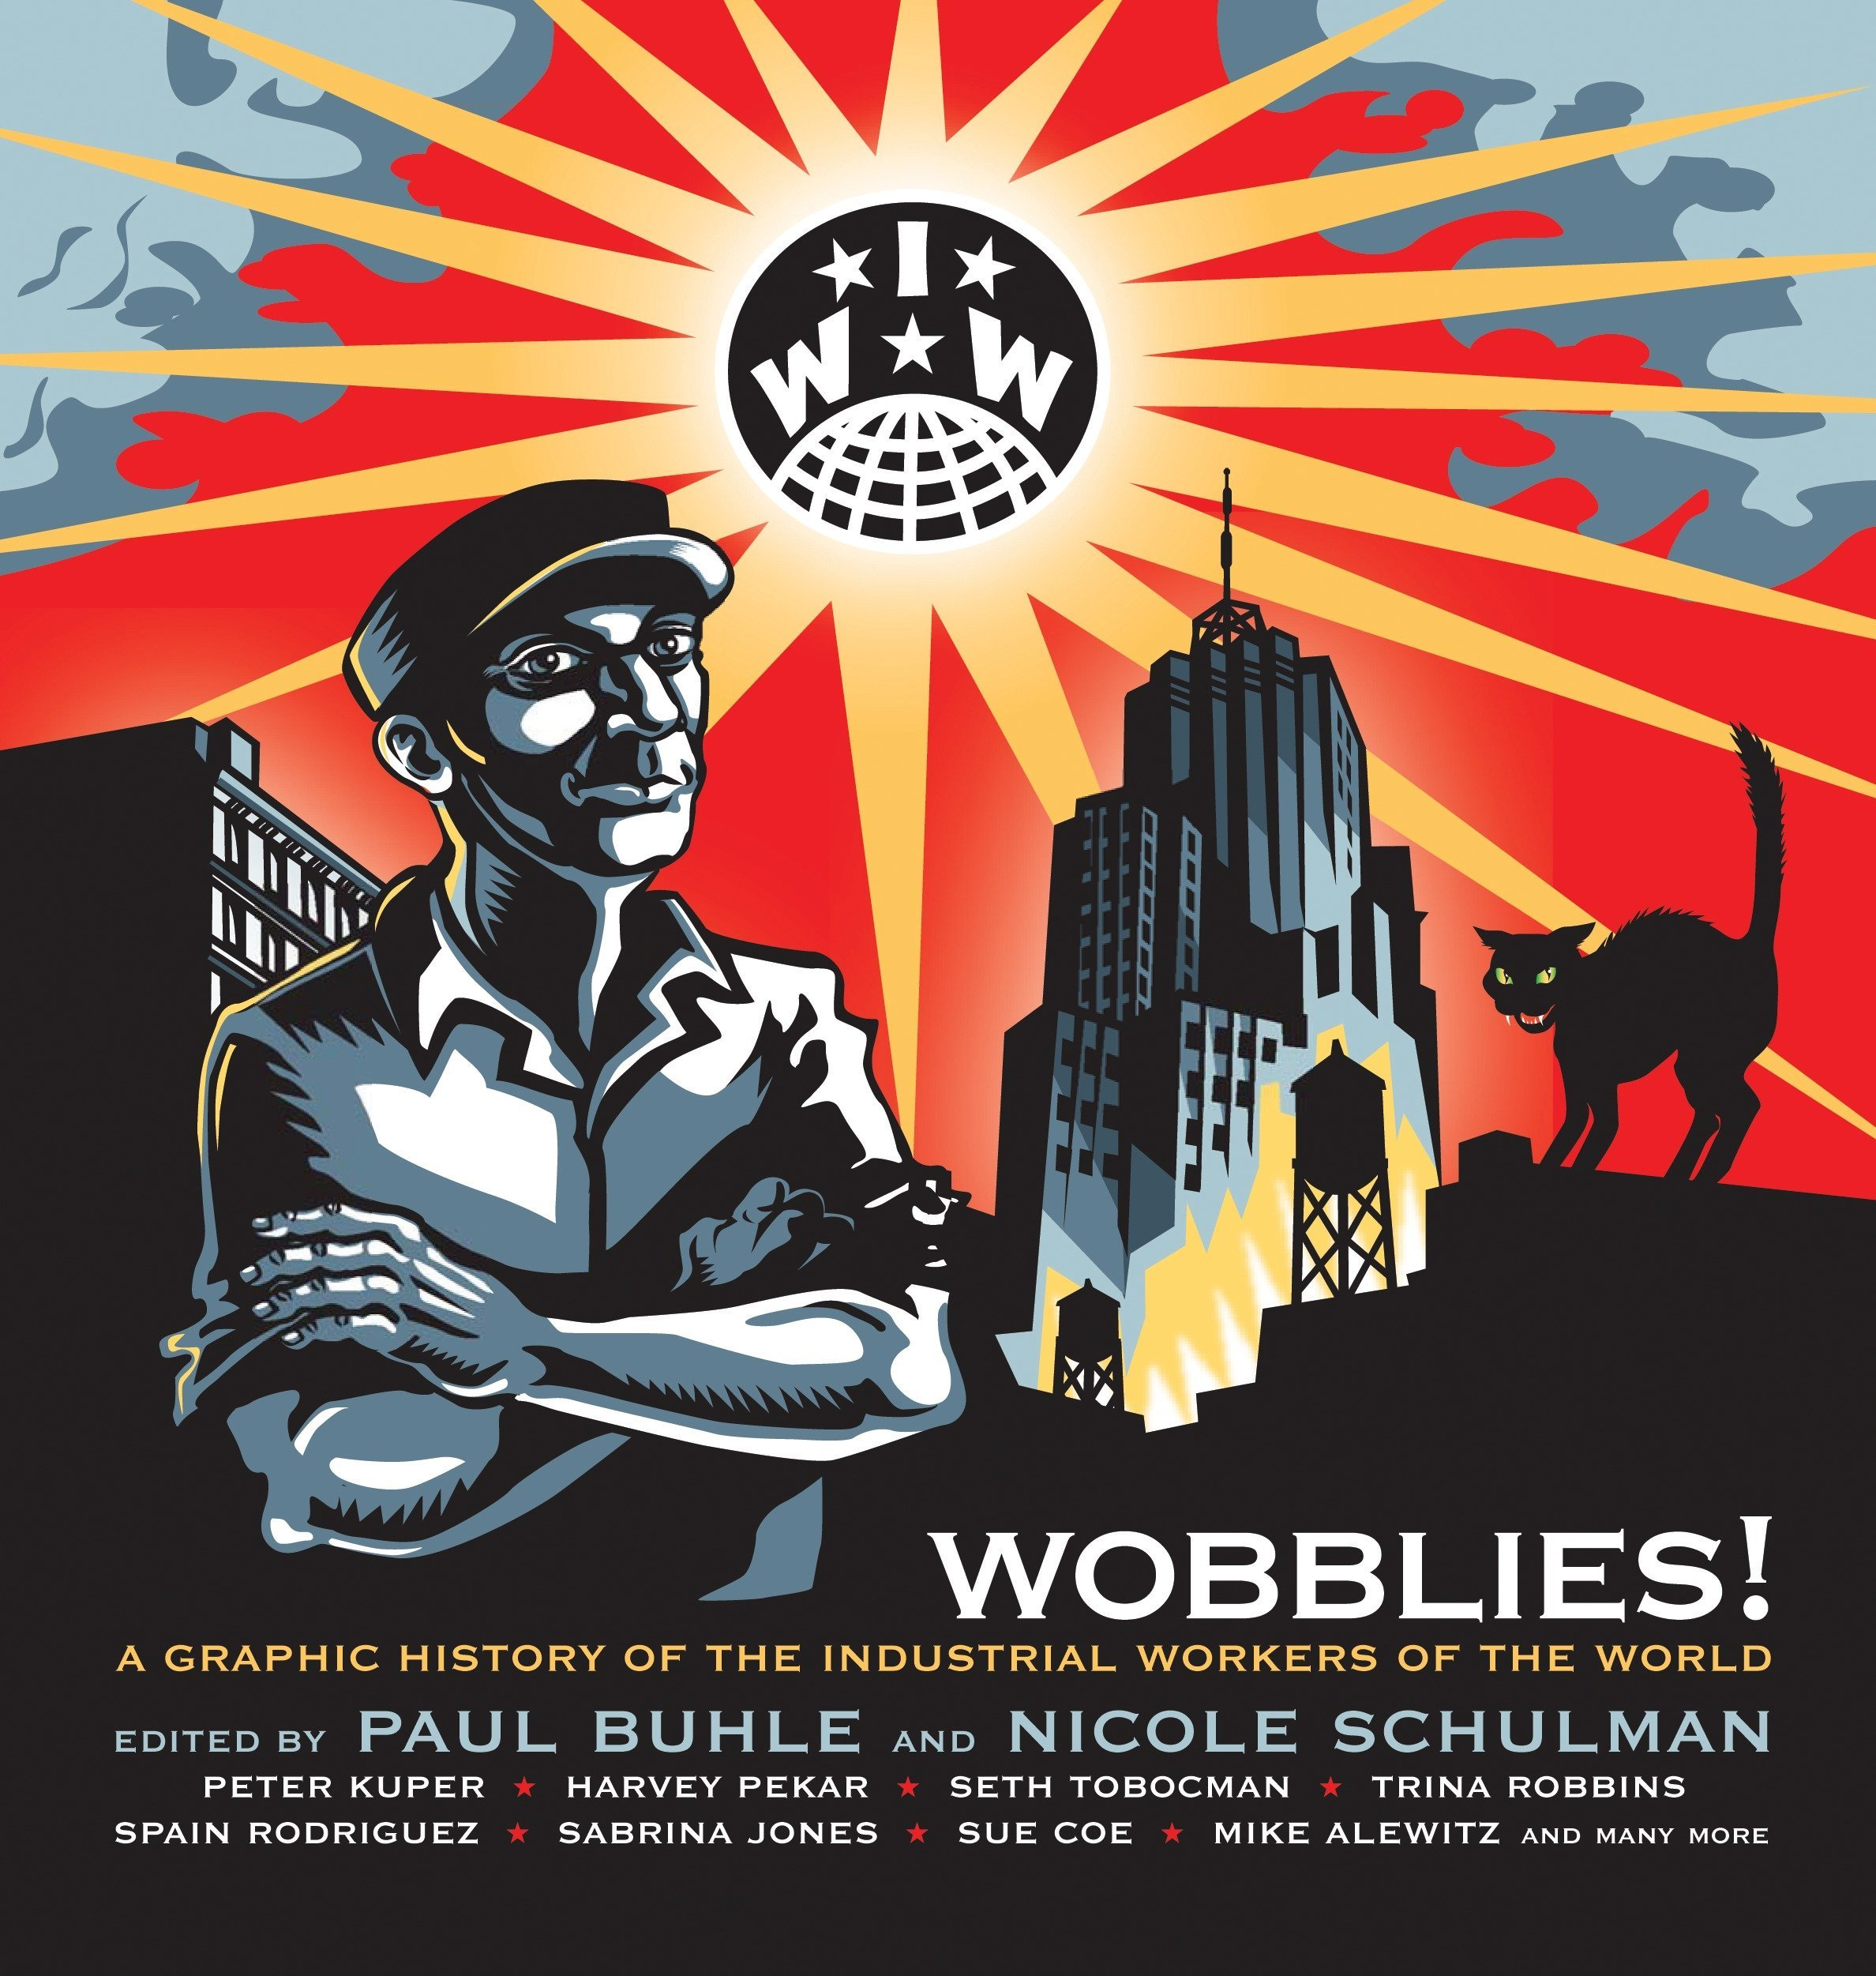 Paul Buhle (red), Nicola Schulman (red): Wobblies! A Graphic History of the Industrial Workers of the World